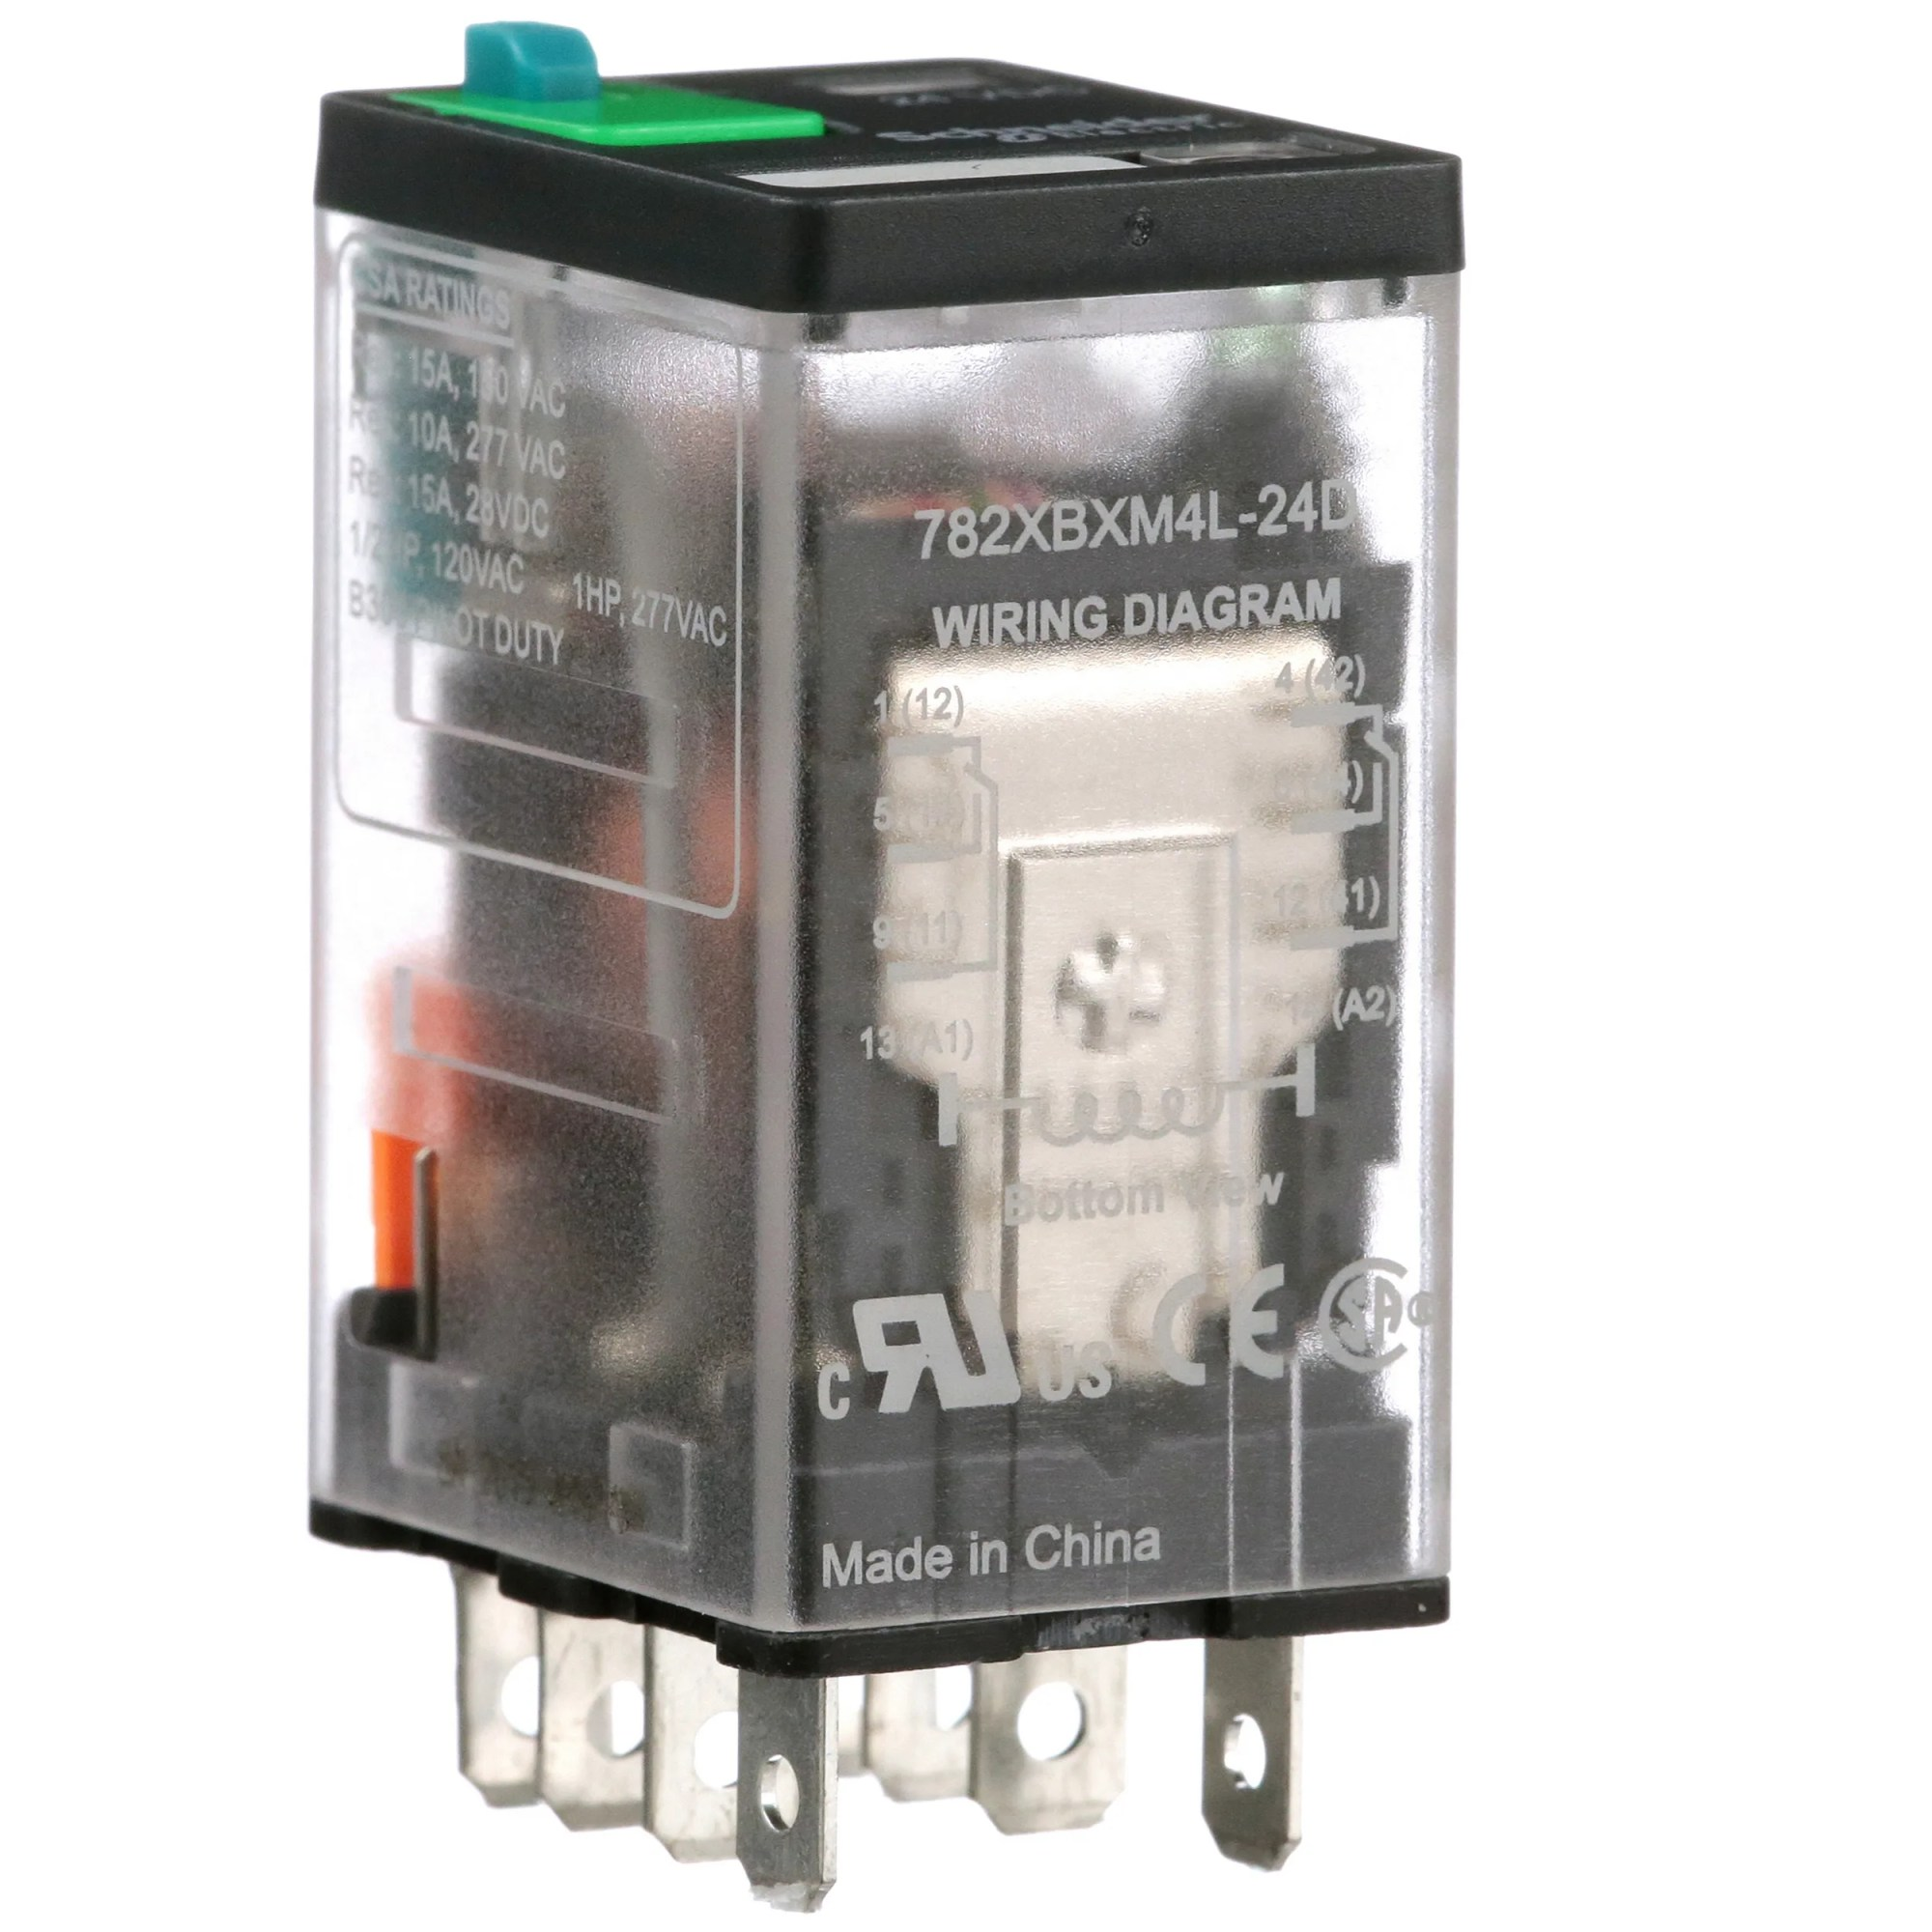 hight resolution of schneider electric legacy relays 782xbxm4l 24d